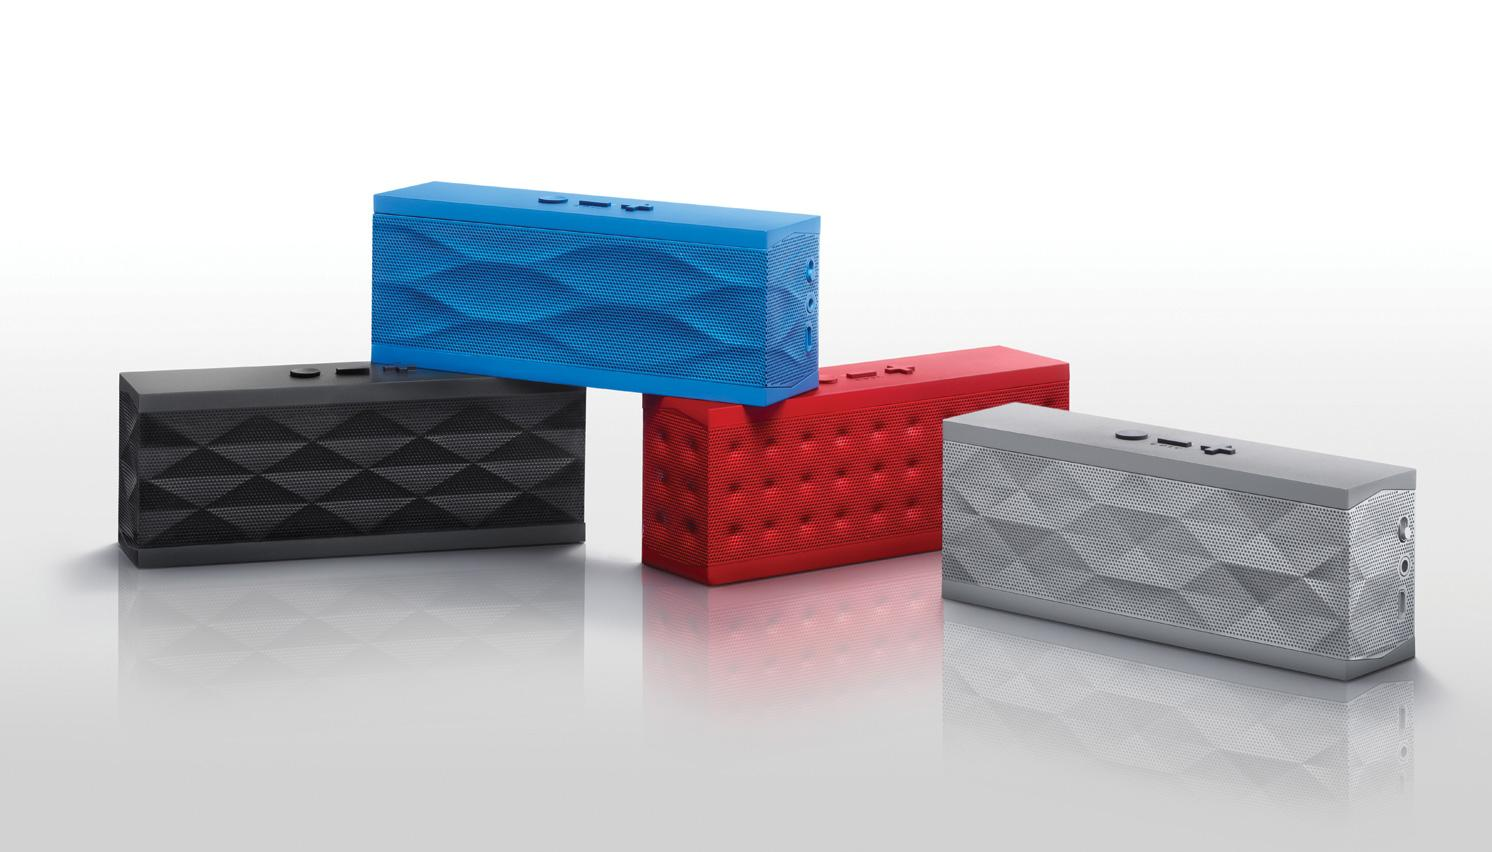 aliph-jawbone-jambox-in-color.jpeg 1,492×852 pixels